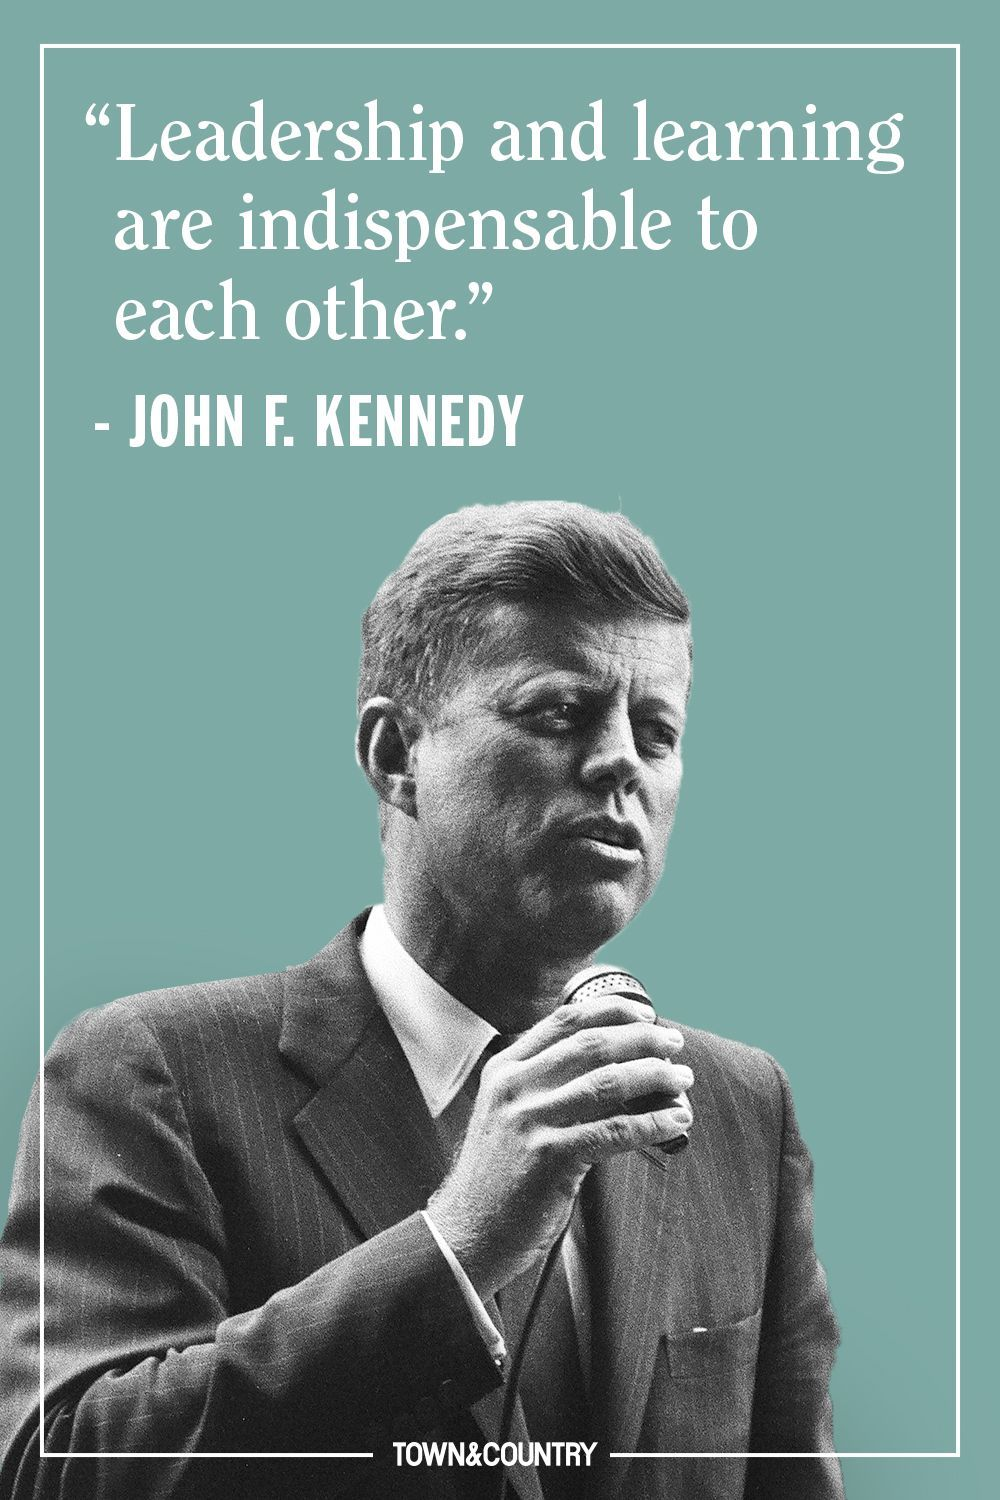 Jfk Quotes Captivating 12 Jfk Quotes That Prove His Wisdom Is As Legendary As His